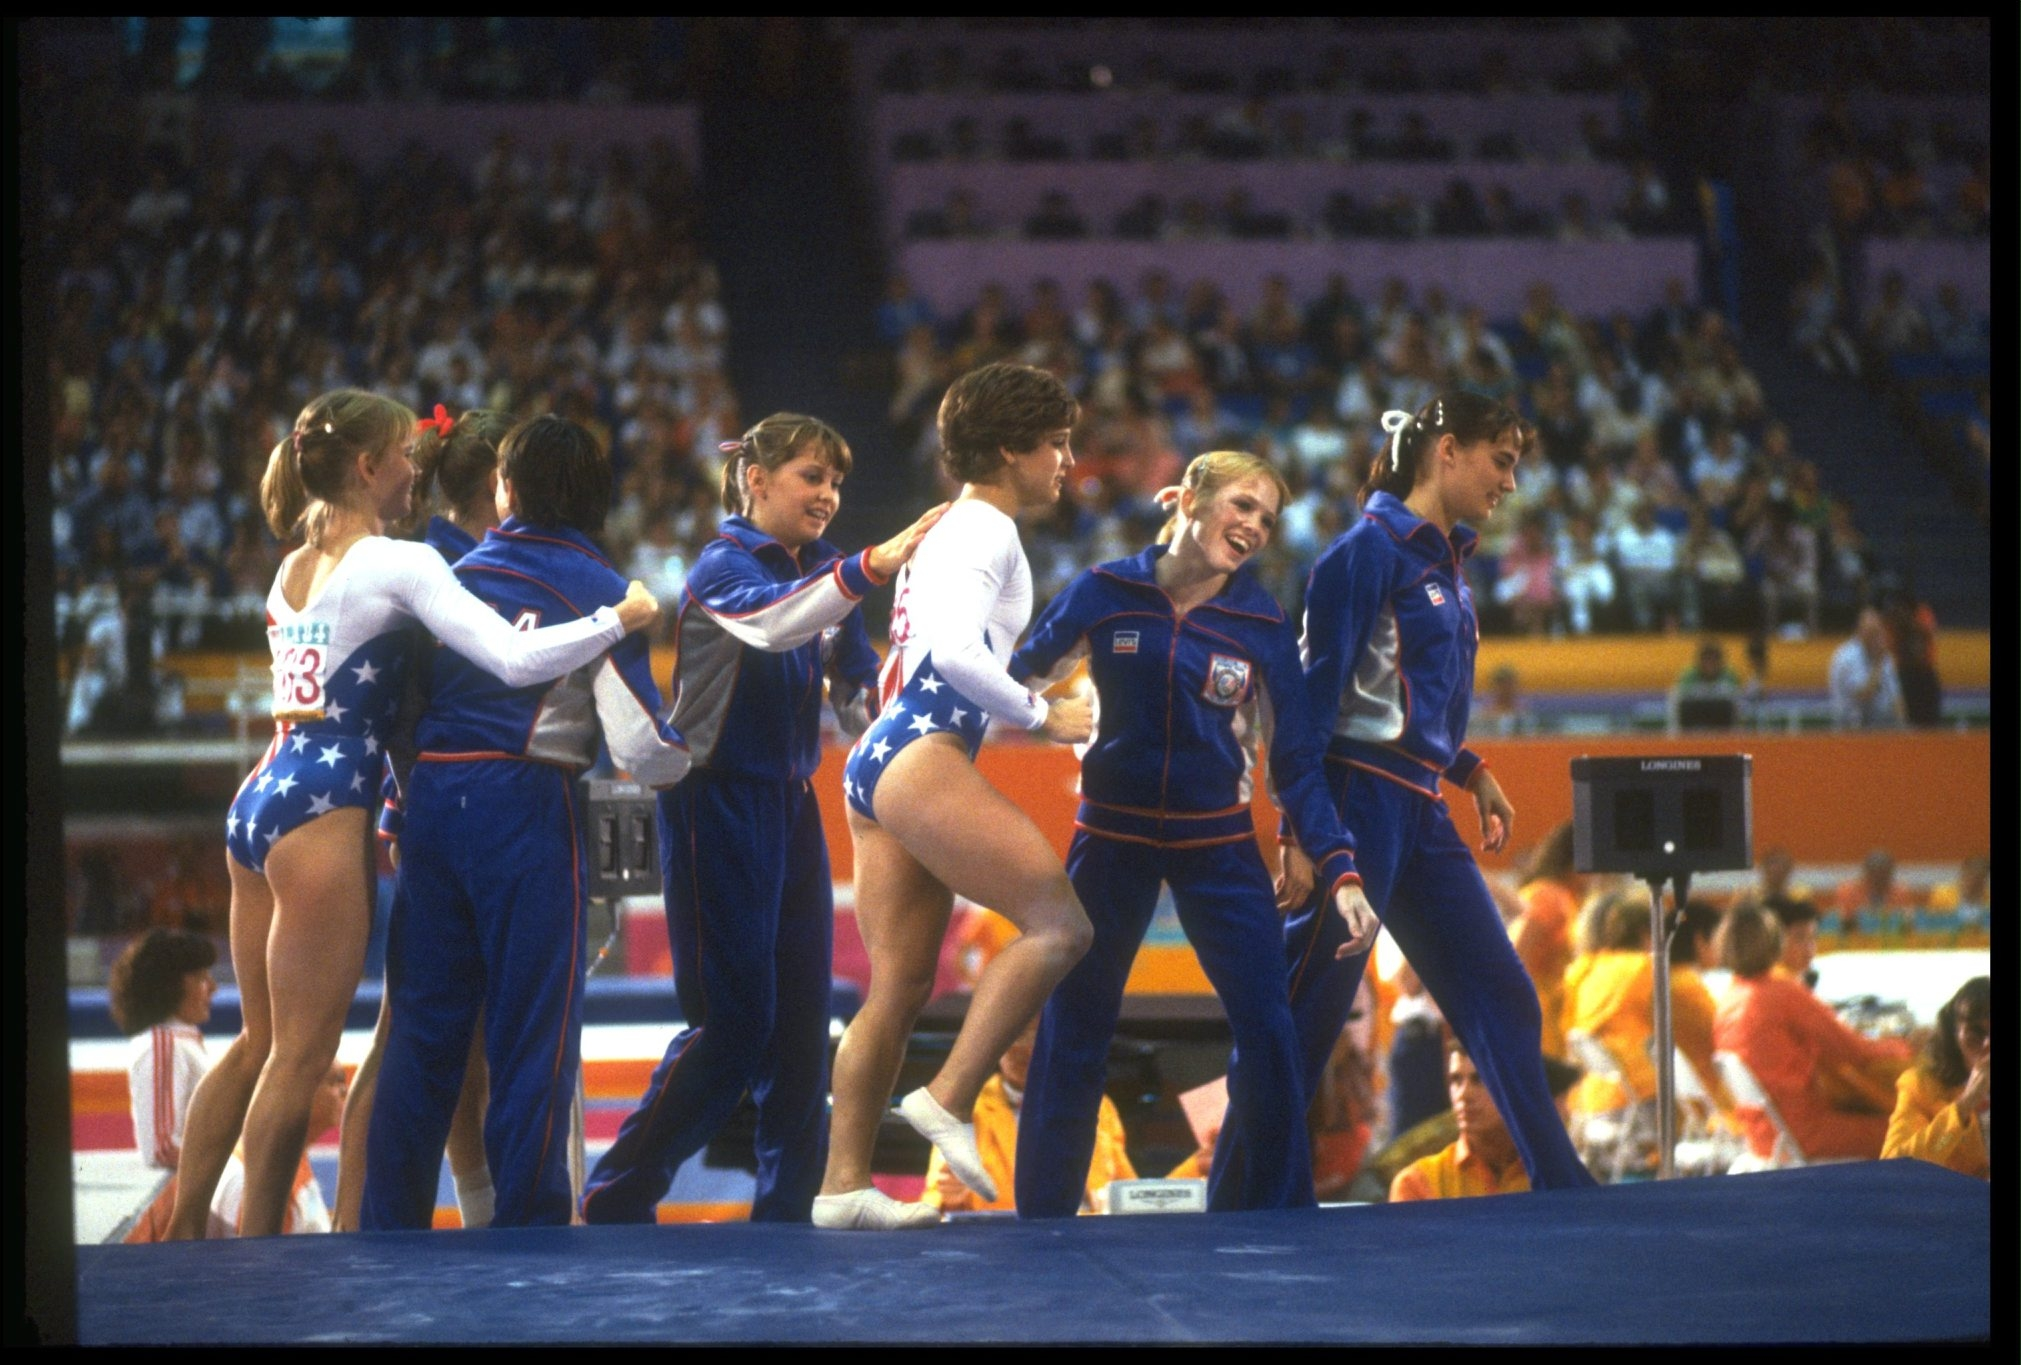 Mary Lou Retton (center in white) made her mark during the 1984 Summer Olympics in Los Angeles.